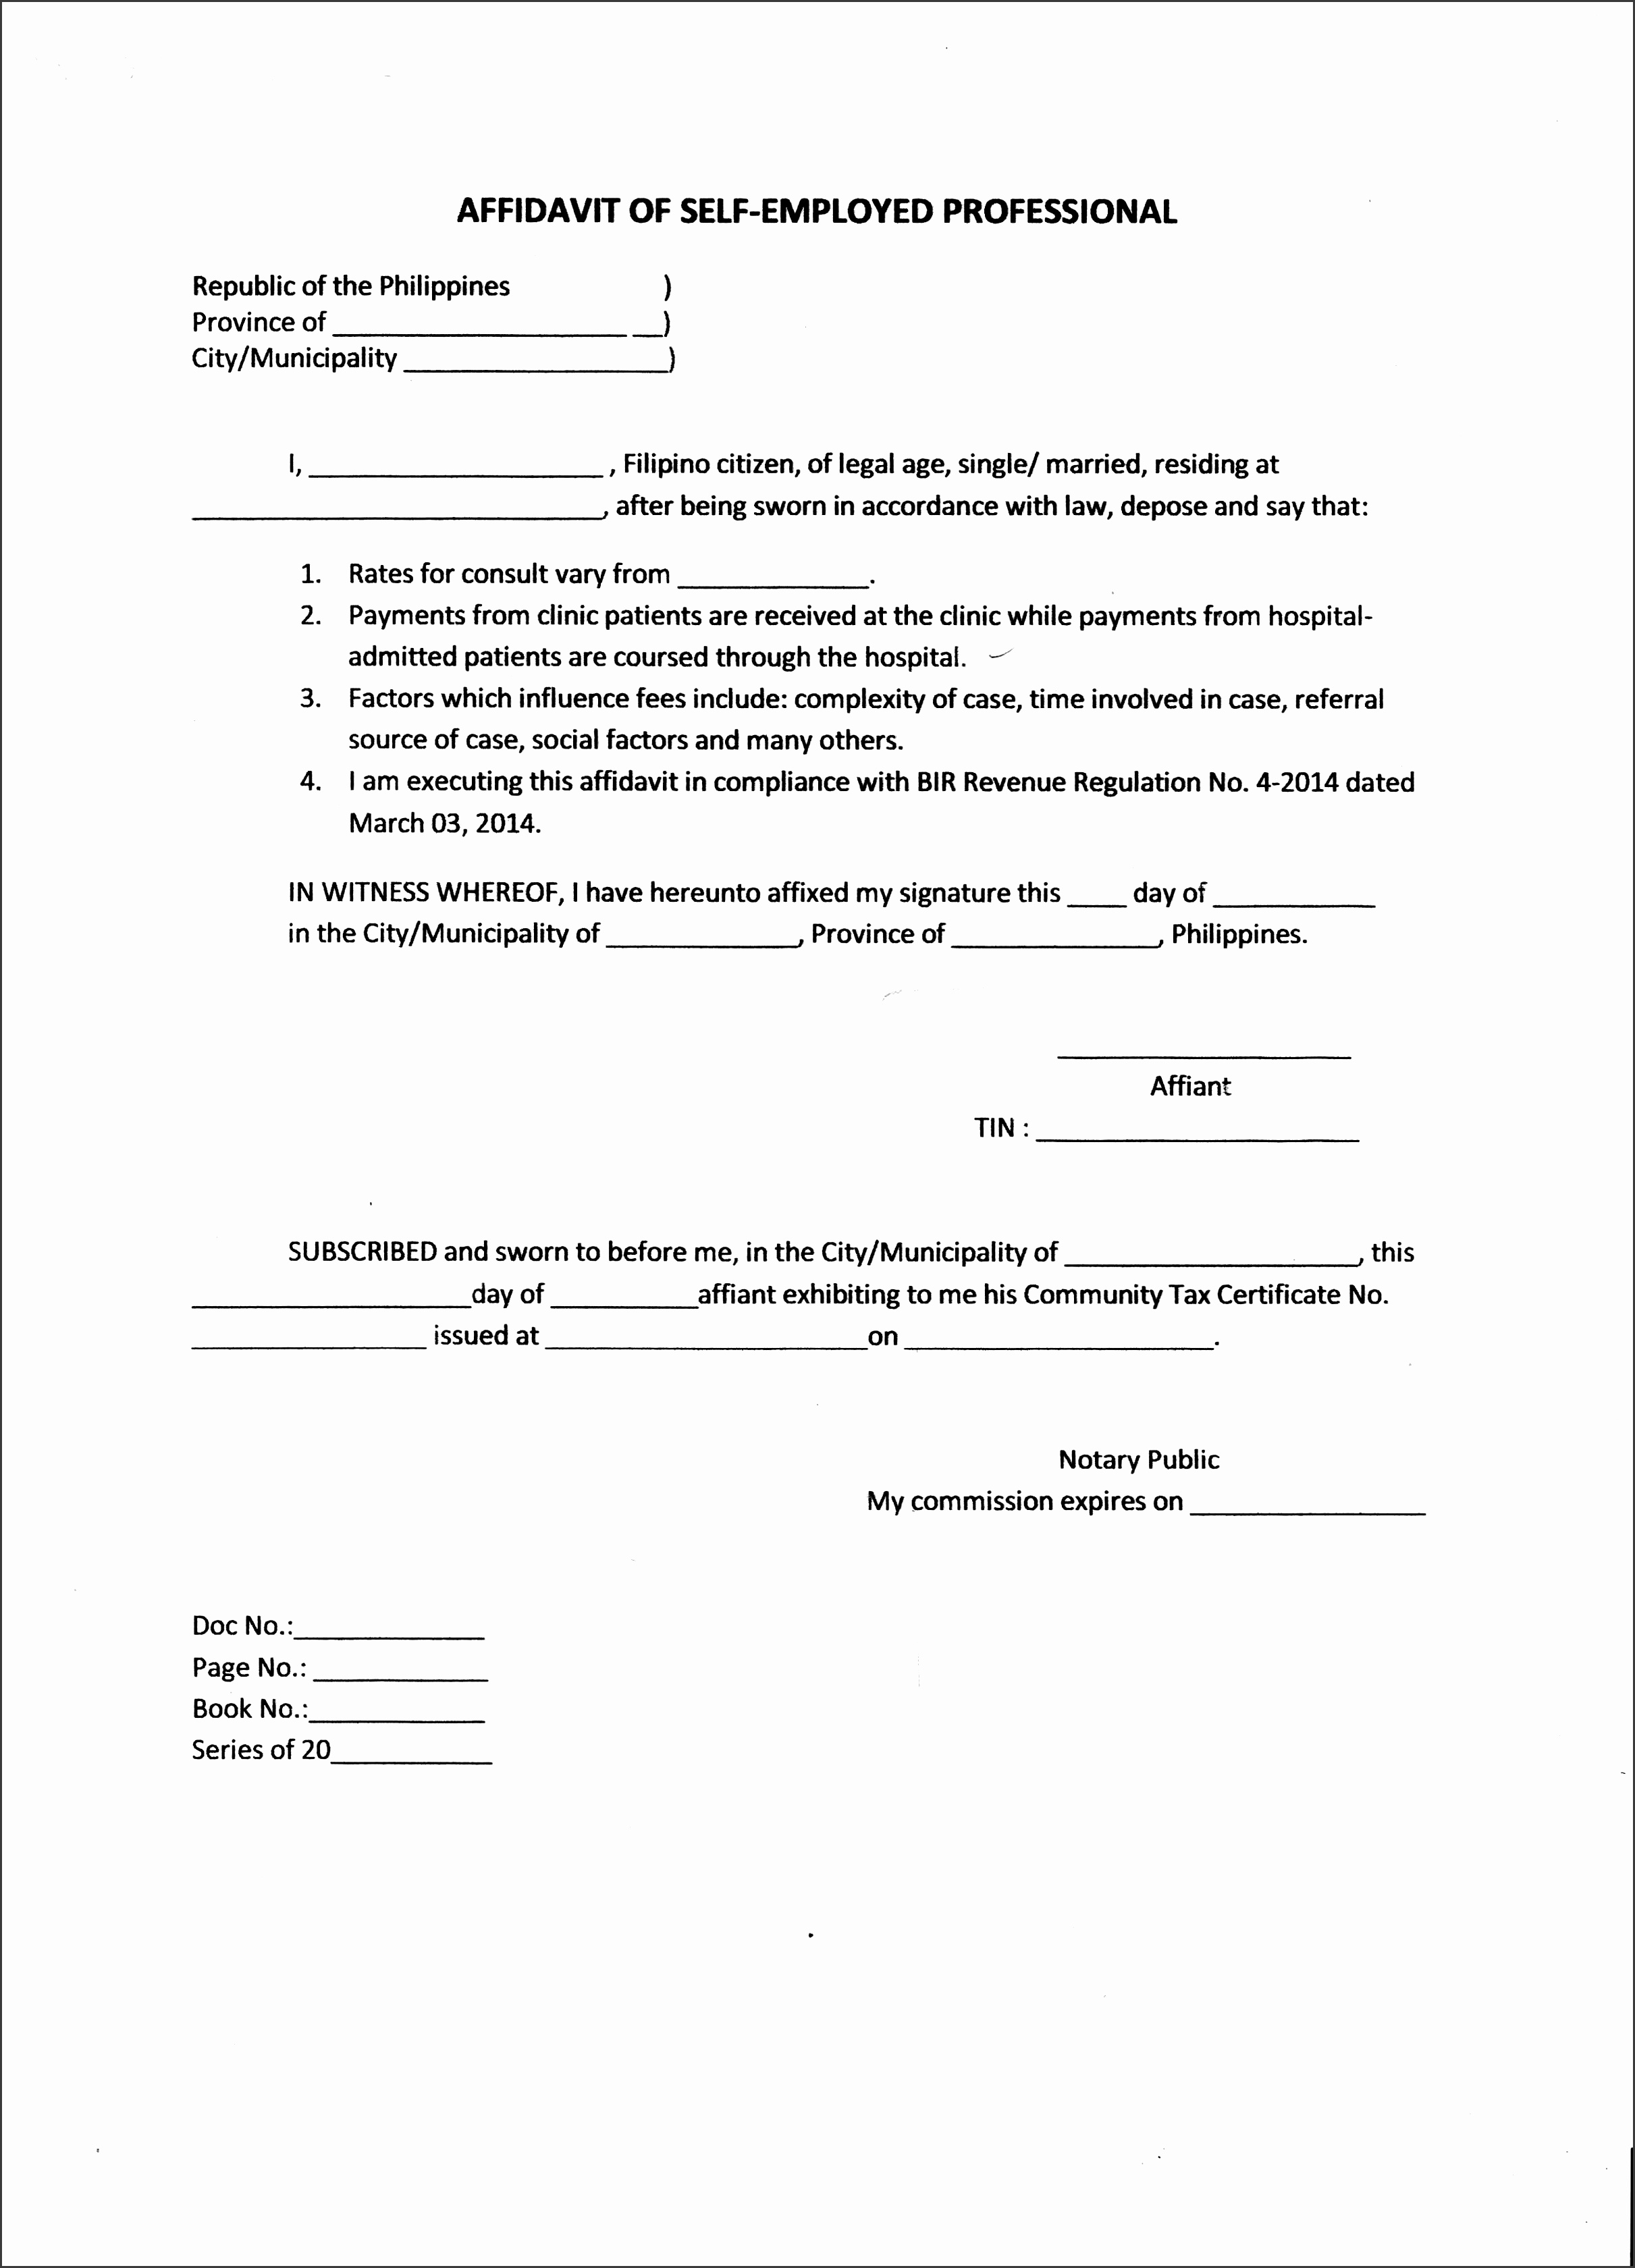 6 Affidavit Form Template In Word SampleTemplatess Affidavit Form Template  In Word Sbnve Fresh Excellent Affidavit Of Denial Template With Sworn Word  Points ...  General Affidavit Example